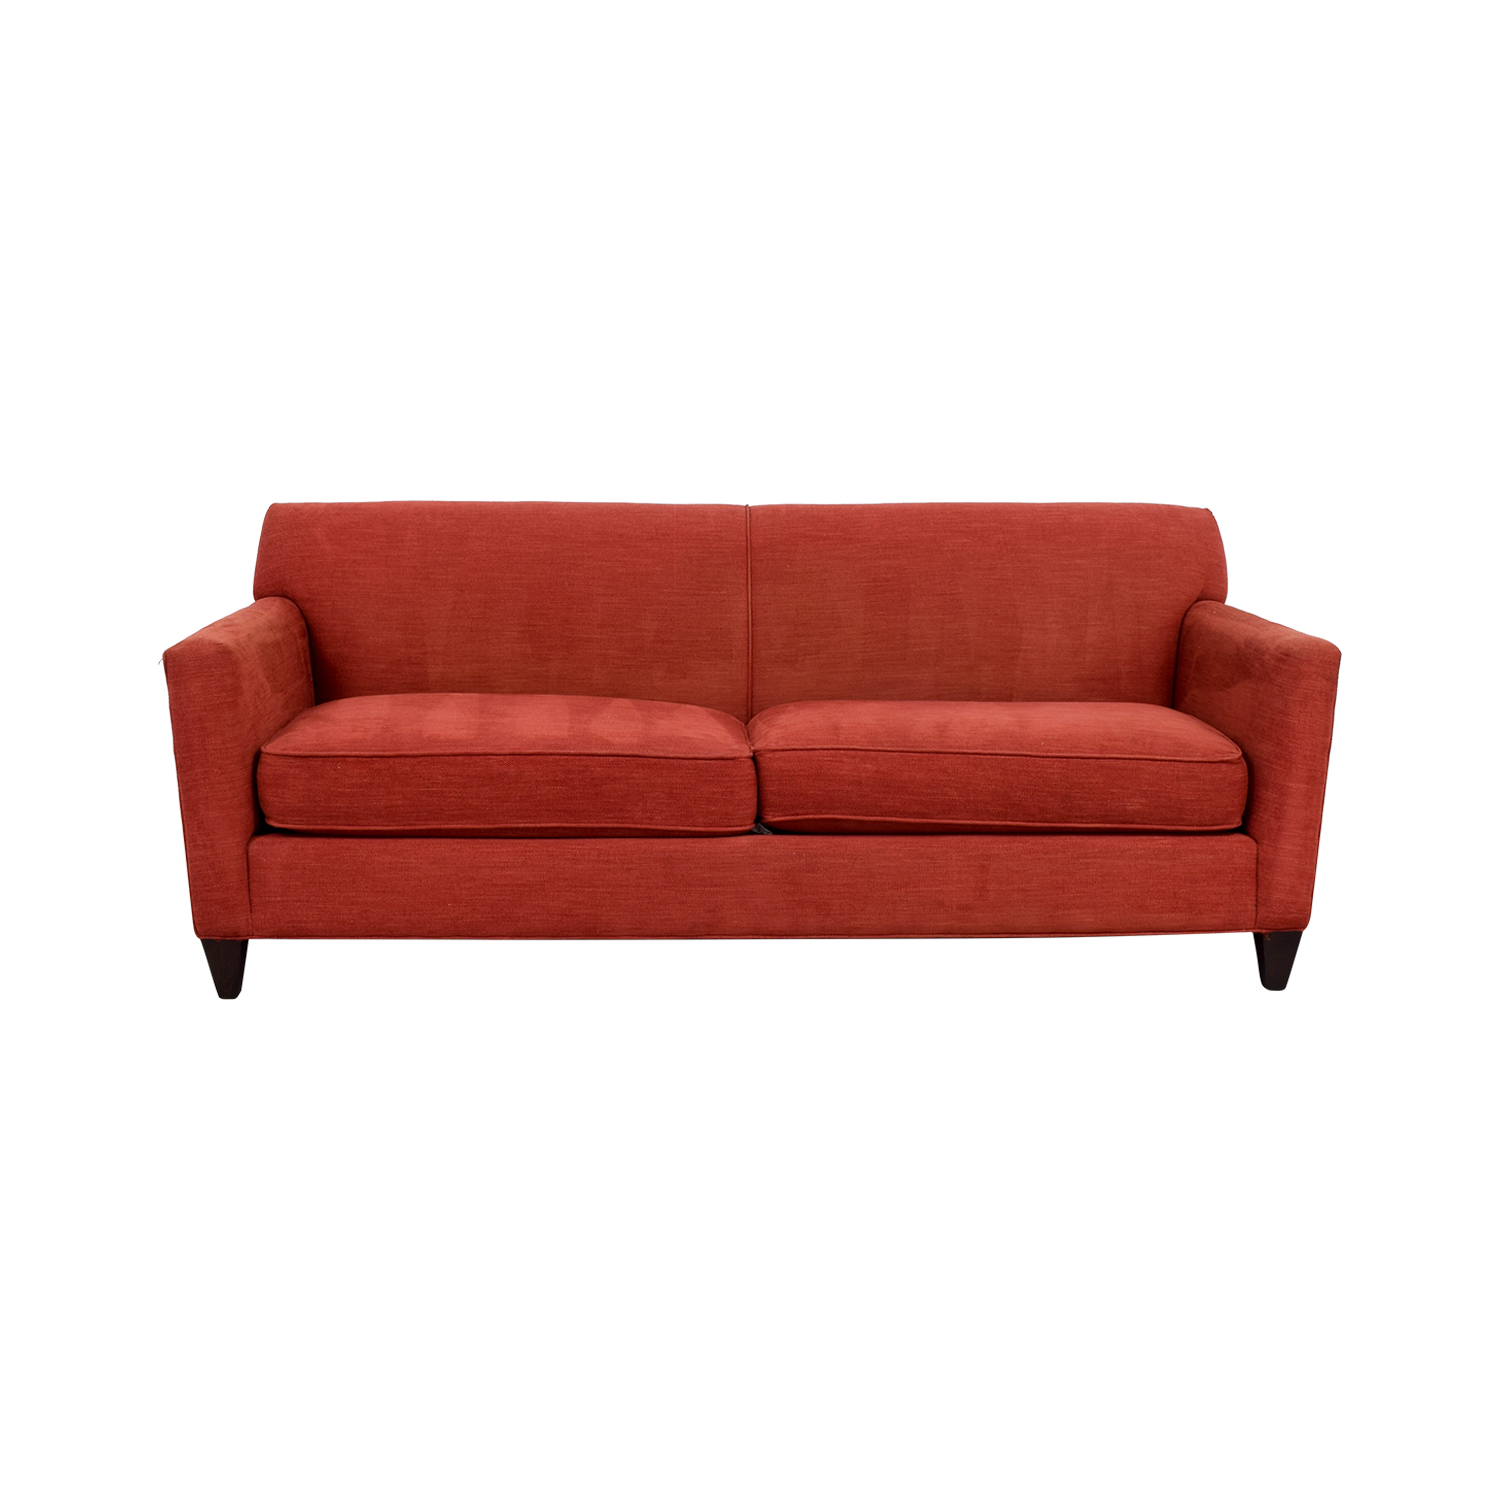 crate and barrel verano sofa smoke best rated small sectional hennessy 56 off cardinal red